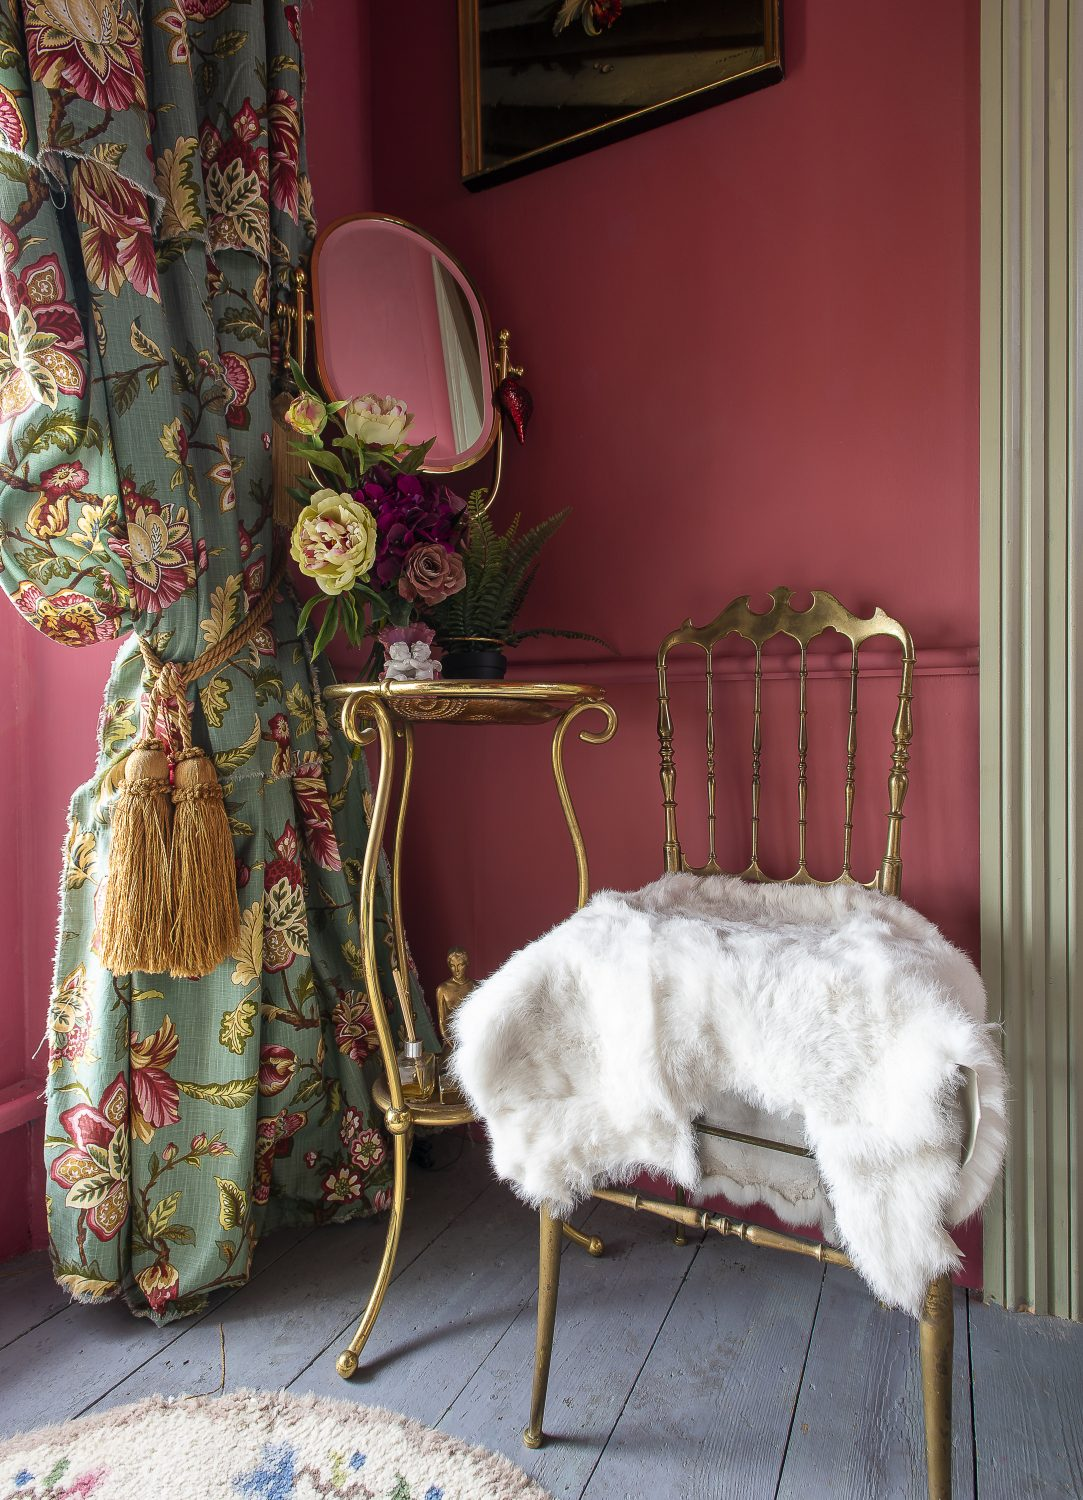 The wonderfully romantic bedroom is like a film set from the 1950s. The room is taken up almost entirely by a steel bed, made up with dramatic floral bed linen, from John Lewis, dressed with a floral counterpane and a purple fake fur throw